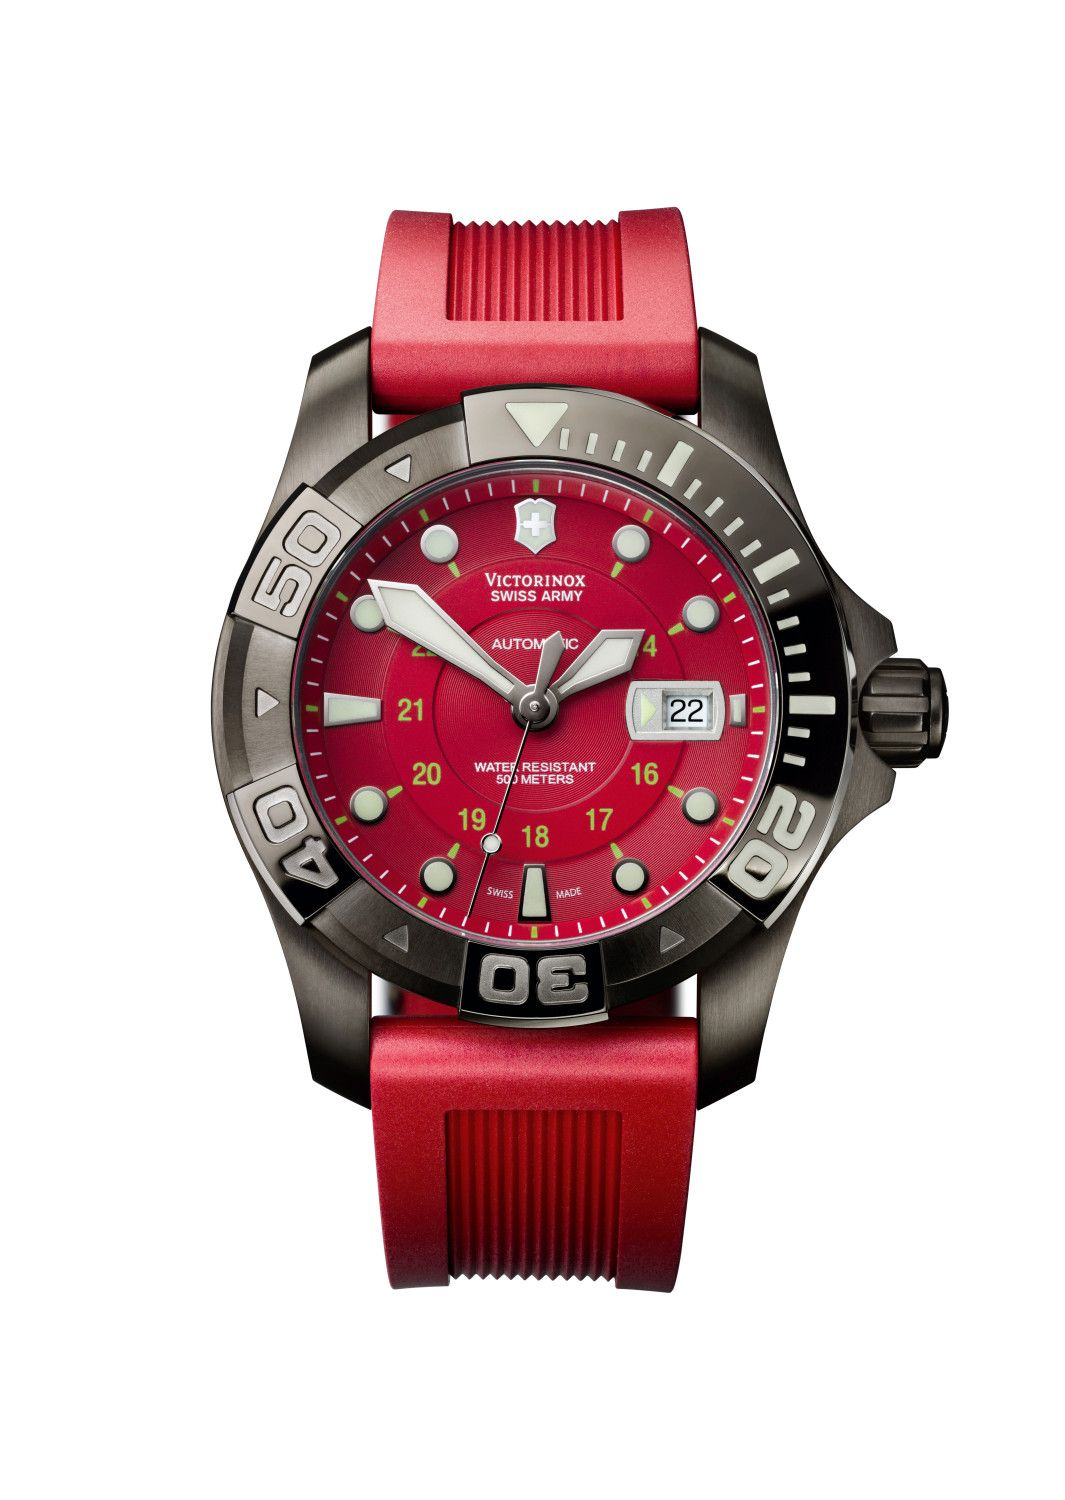 Swiss Army Dive Master 500 is a diving watch